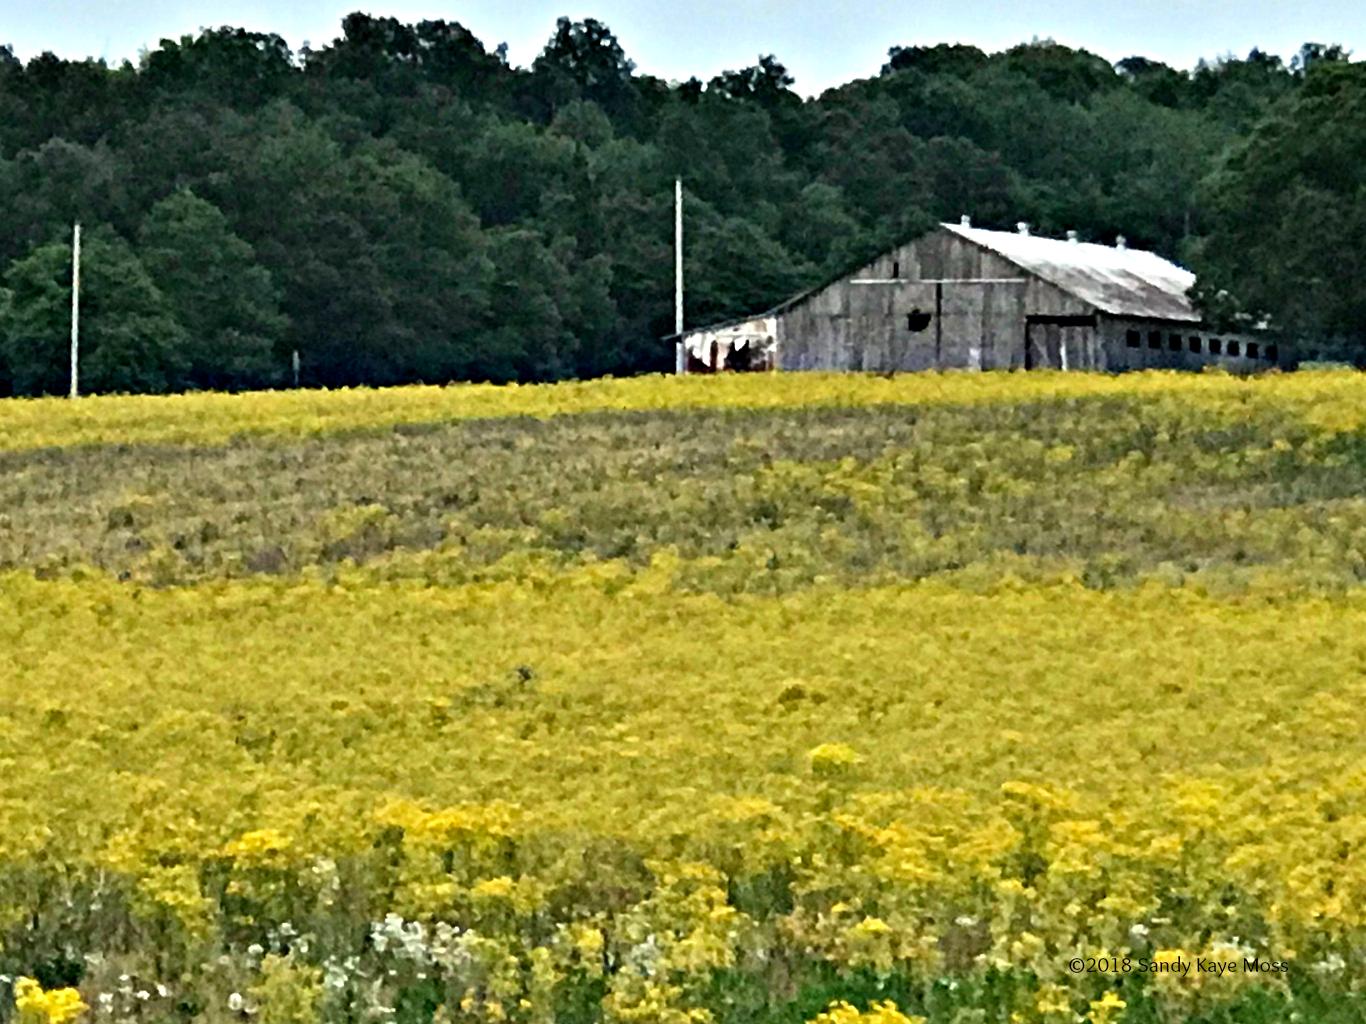 Fields of Coreopsis grow with wild abandon in the spring in Kentucky. Field after field of these flowers keep us company on our Saturday drives. www.sandykayemoss